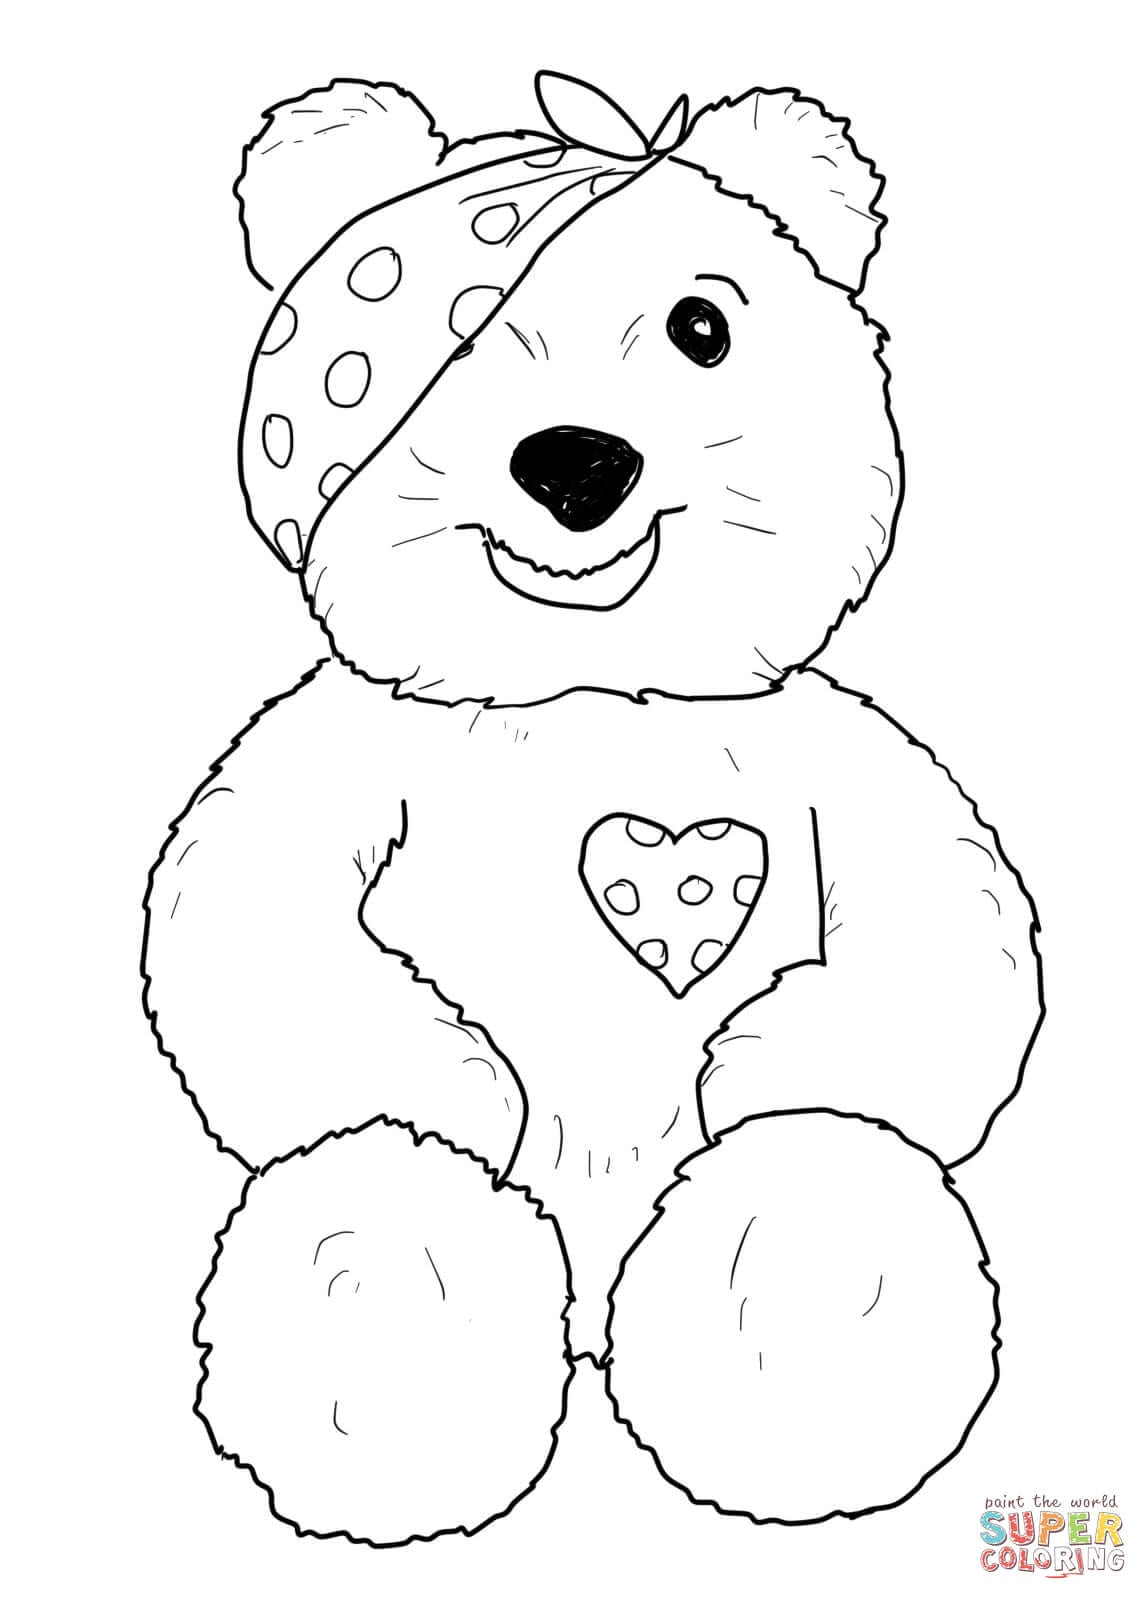 pudsey bear colouring pages 93 coloring pages pudsey bear printable care bears bear pages colouring pudsey